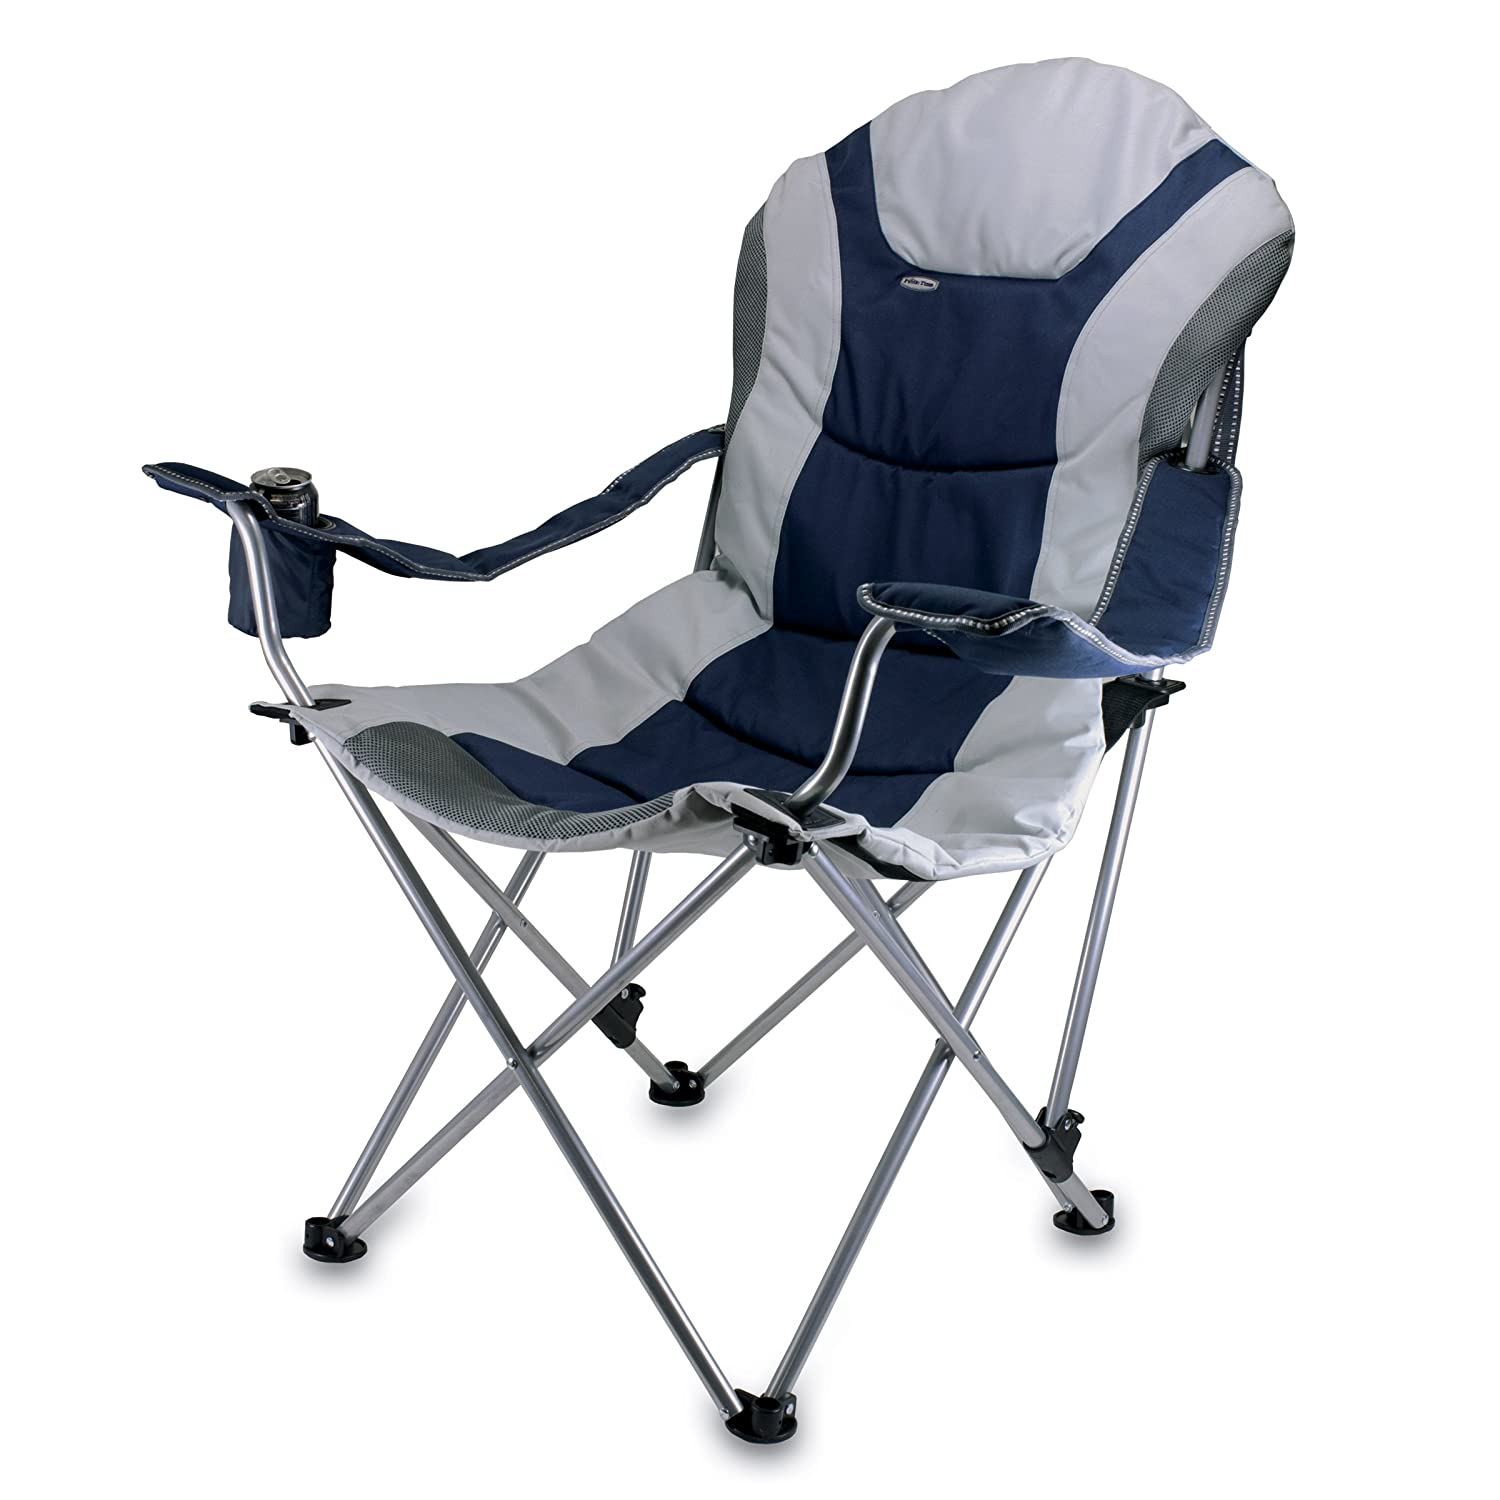 Picnic Time Portable Reclining Camp Chair Navy Amazon